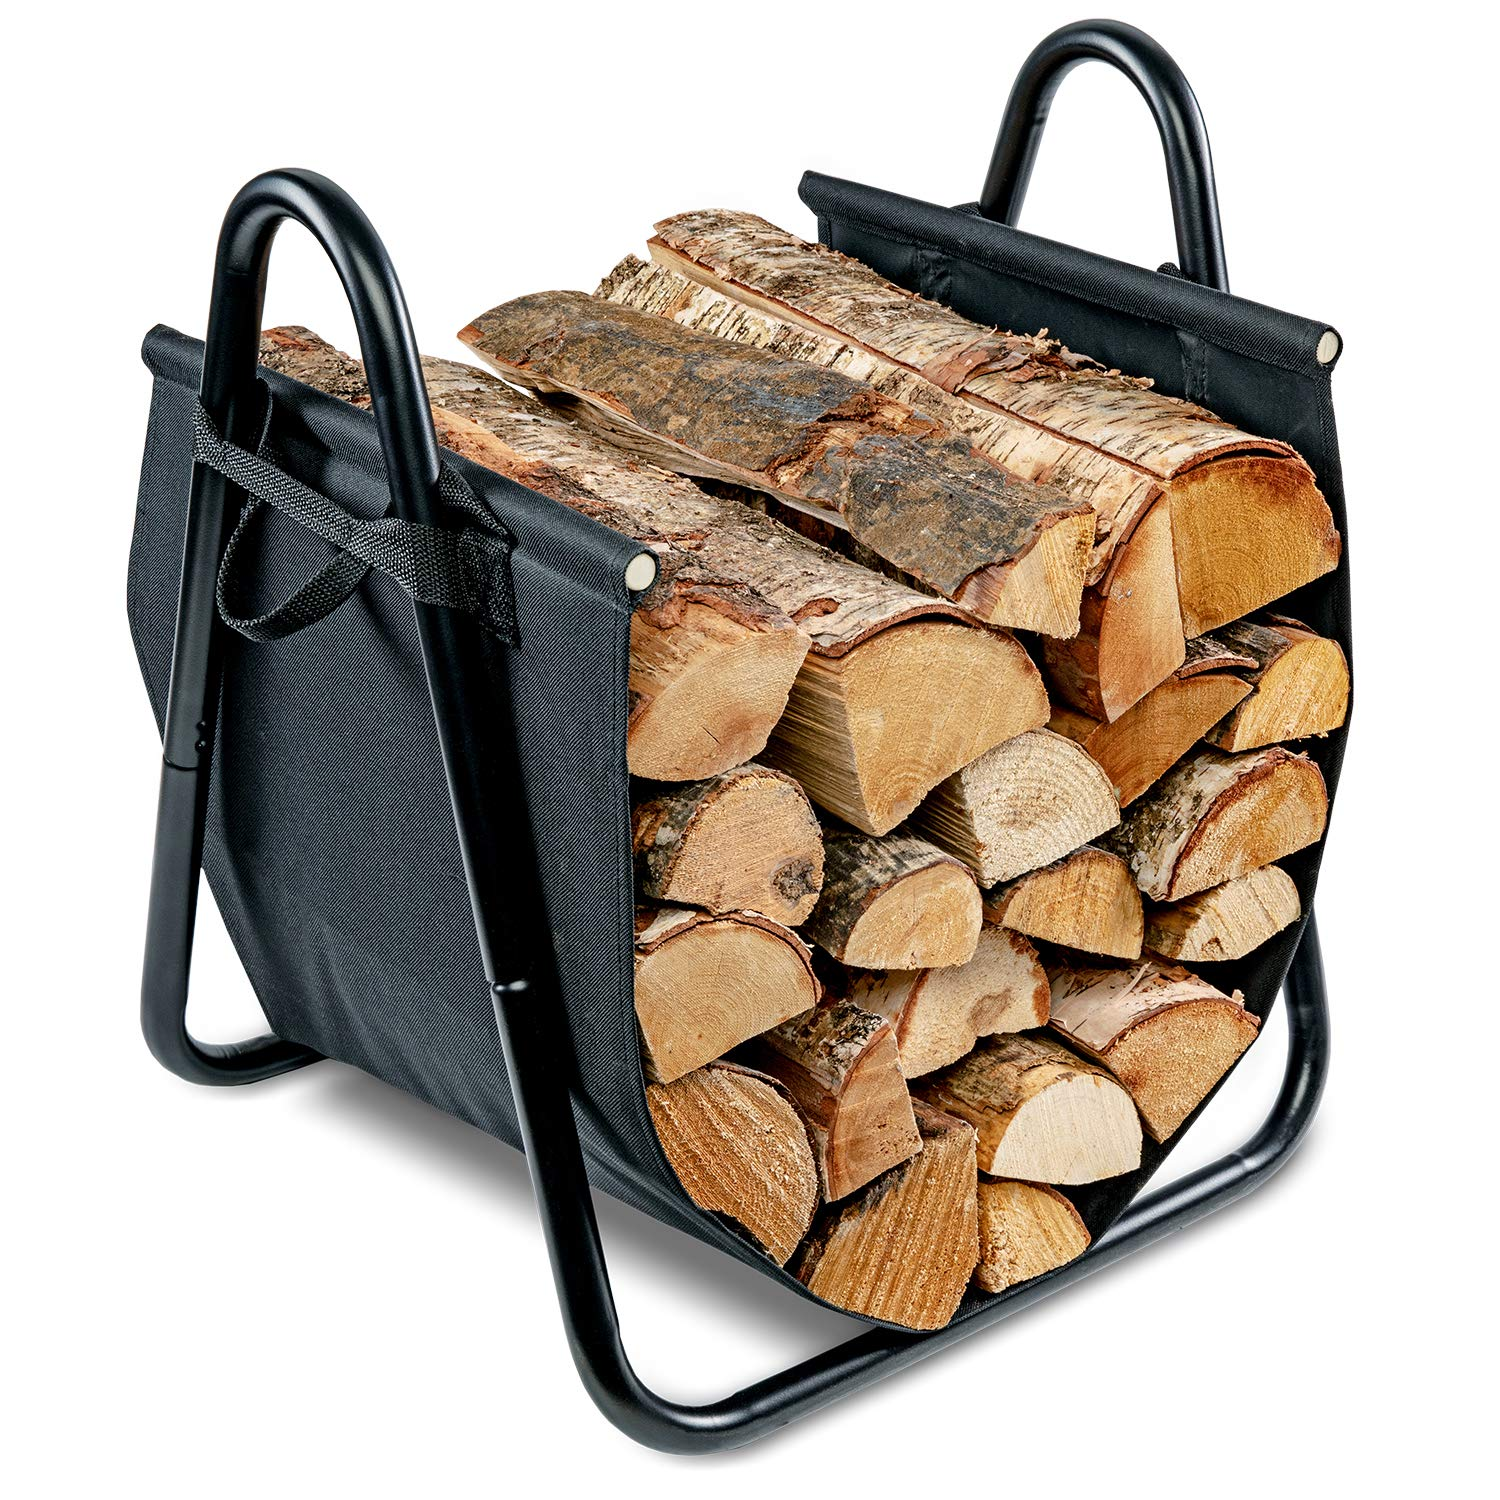 Firewood Log Holder and Carrier | Large 2-in-1 Indoor/Outdoor Firewood Basket w/ Standing Steel Frame Rack & Canvas Tote w/ Handles for Loading & Carrying Kindling | Great for Fireplace or Wood Stove by RightHand